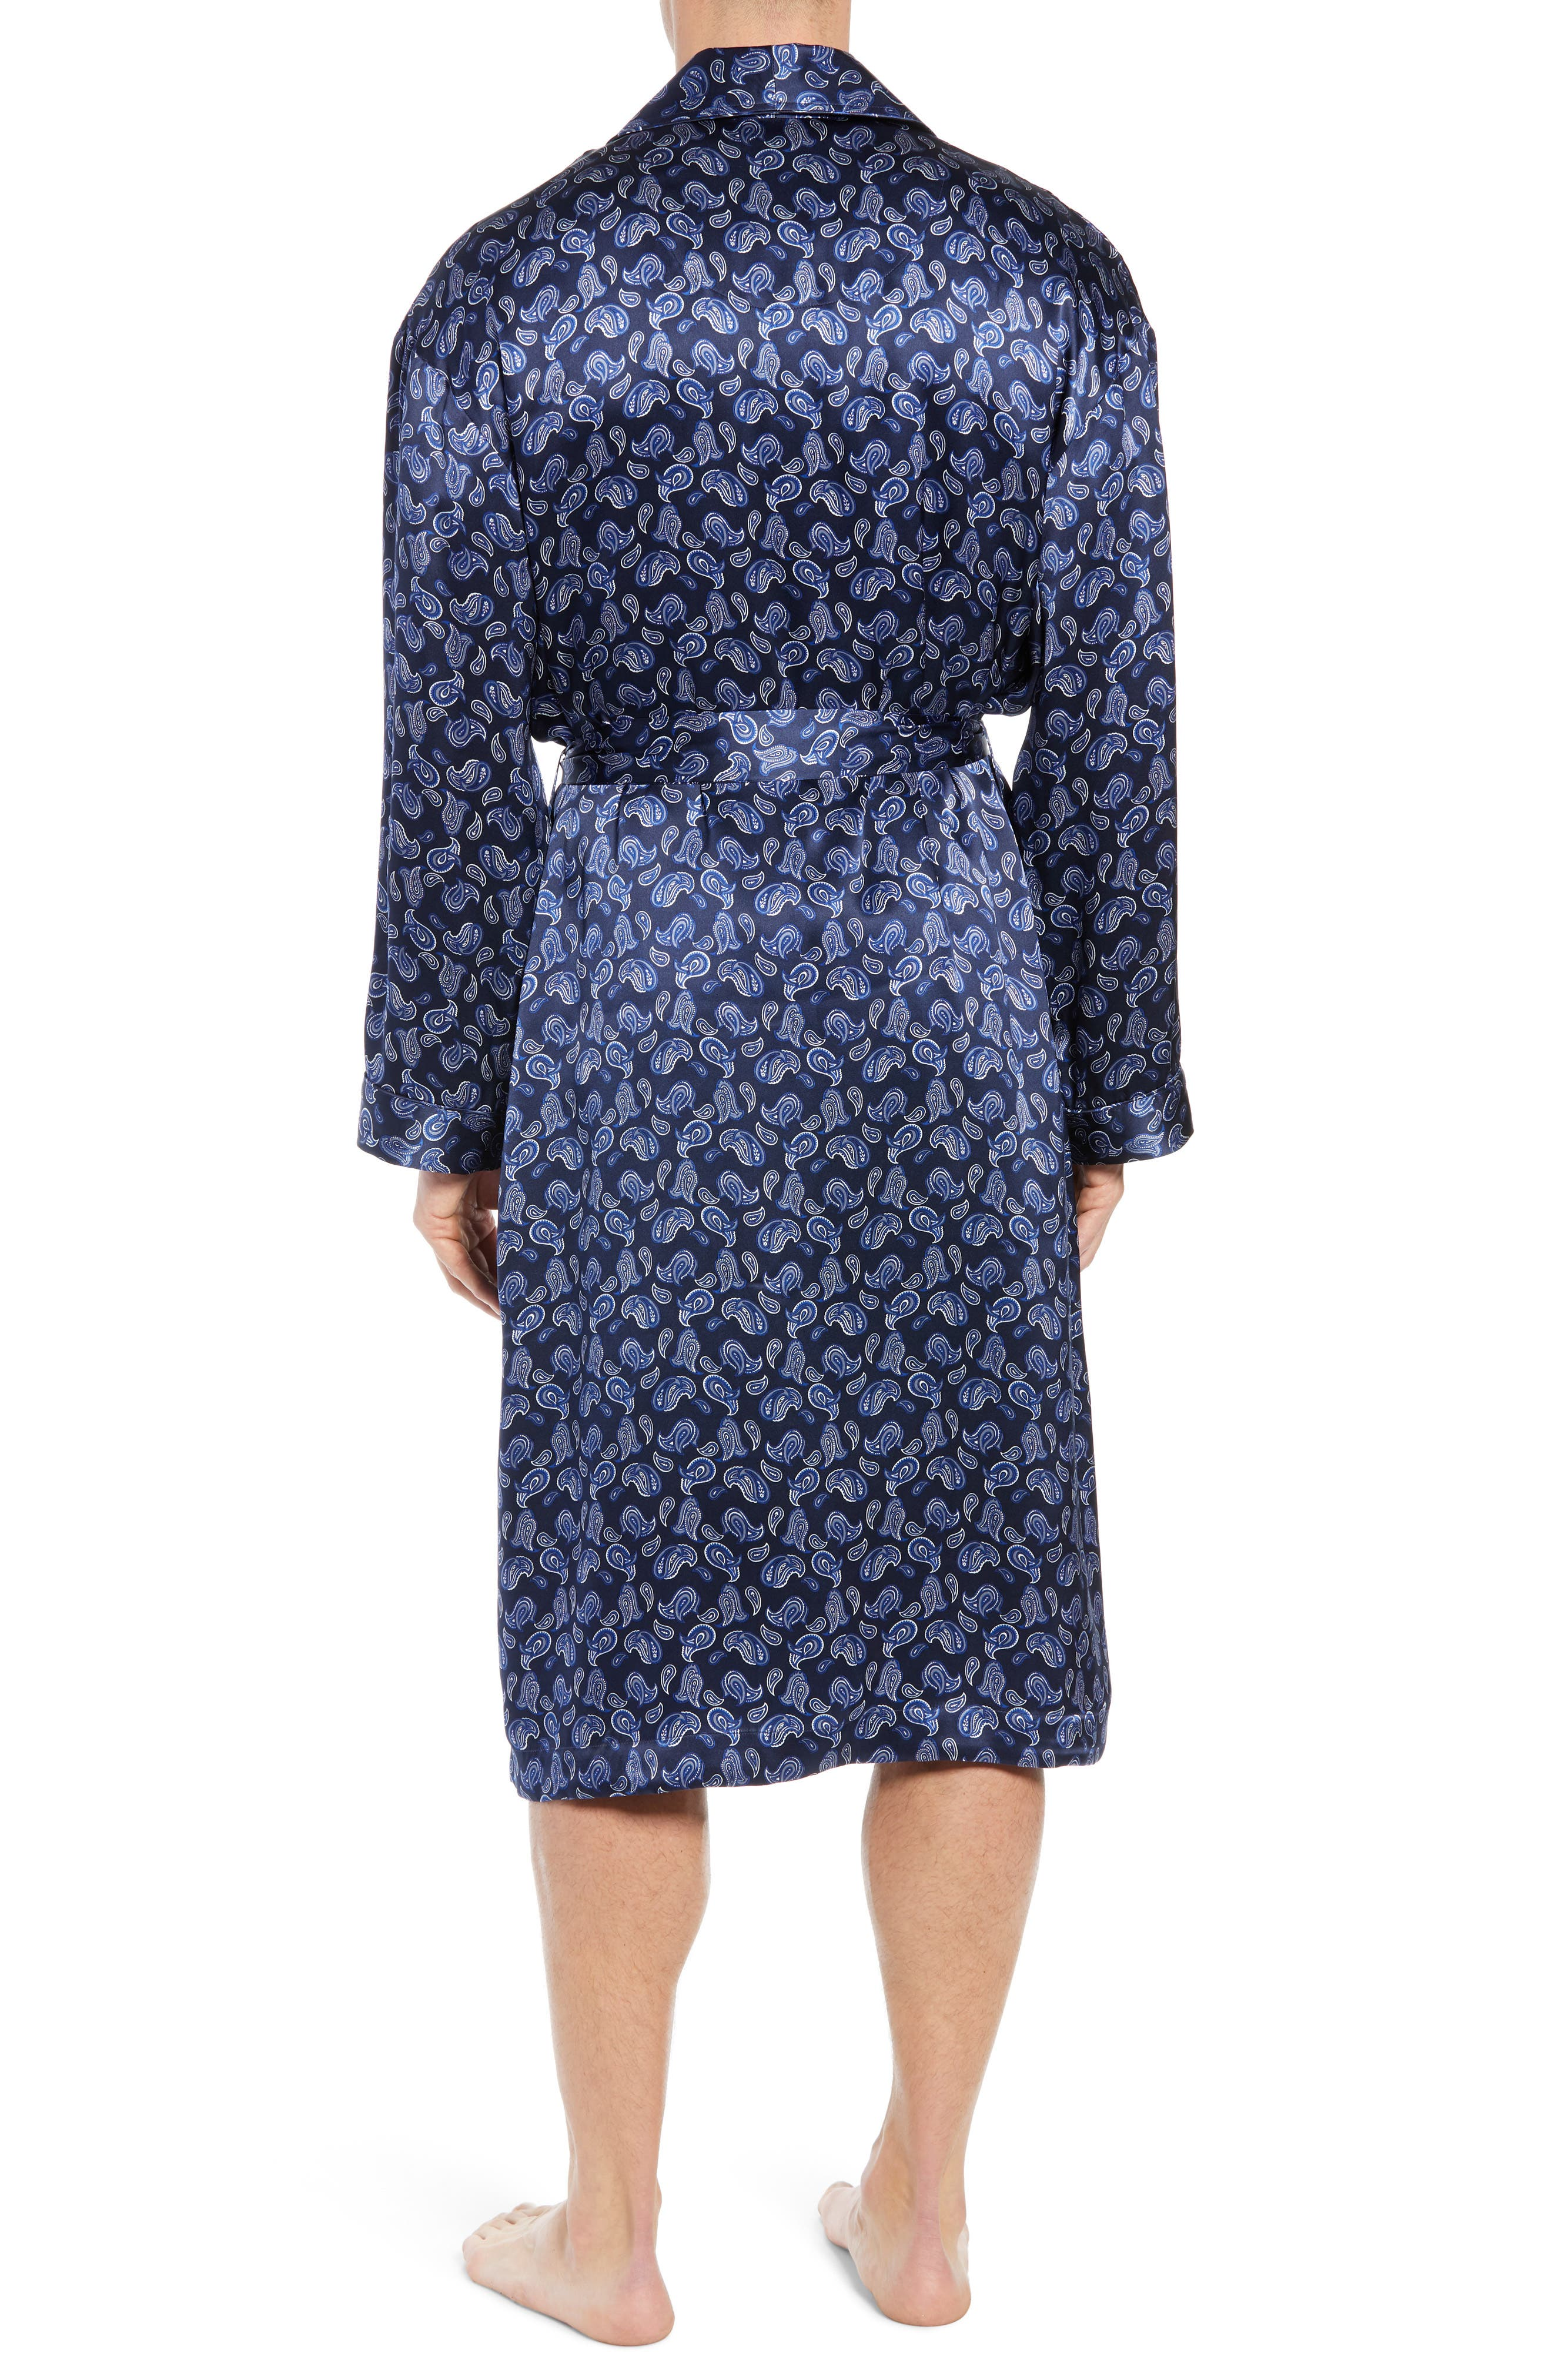 Sapphire Silk Robe,                             Alternate thumbnail 2, color,                             NAVY PAISLEY